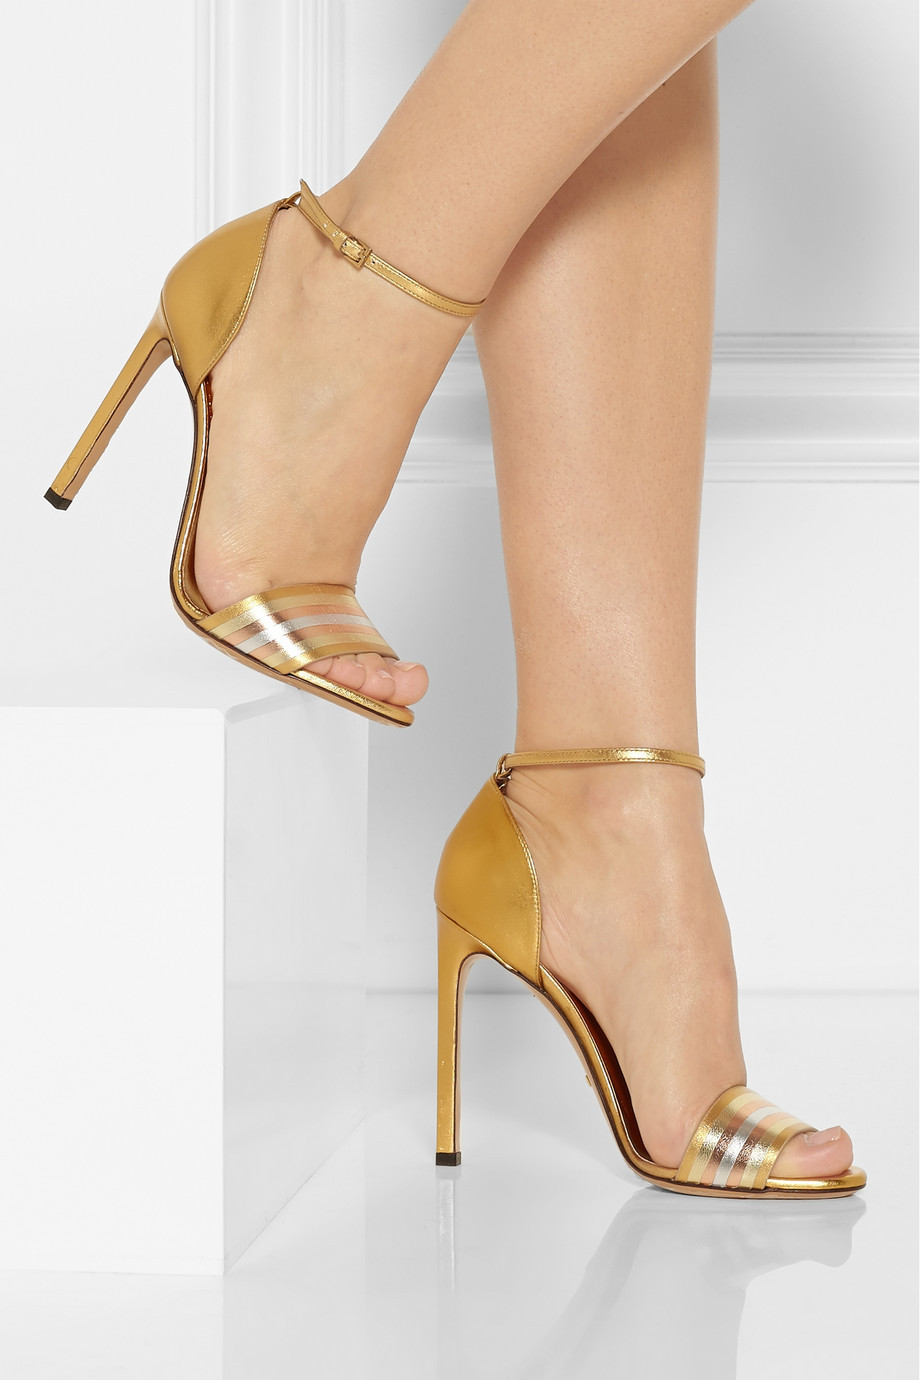 Compare Prices on Gold Heels Cheap- Online Shopping/Buy Low Price